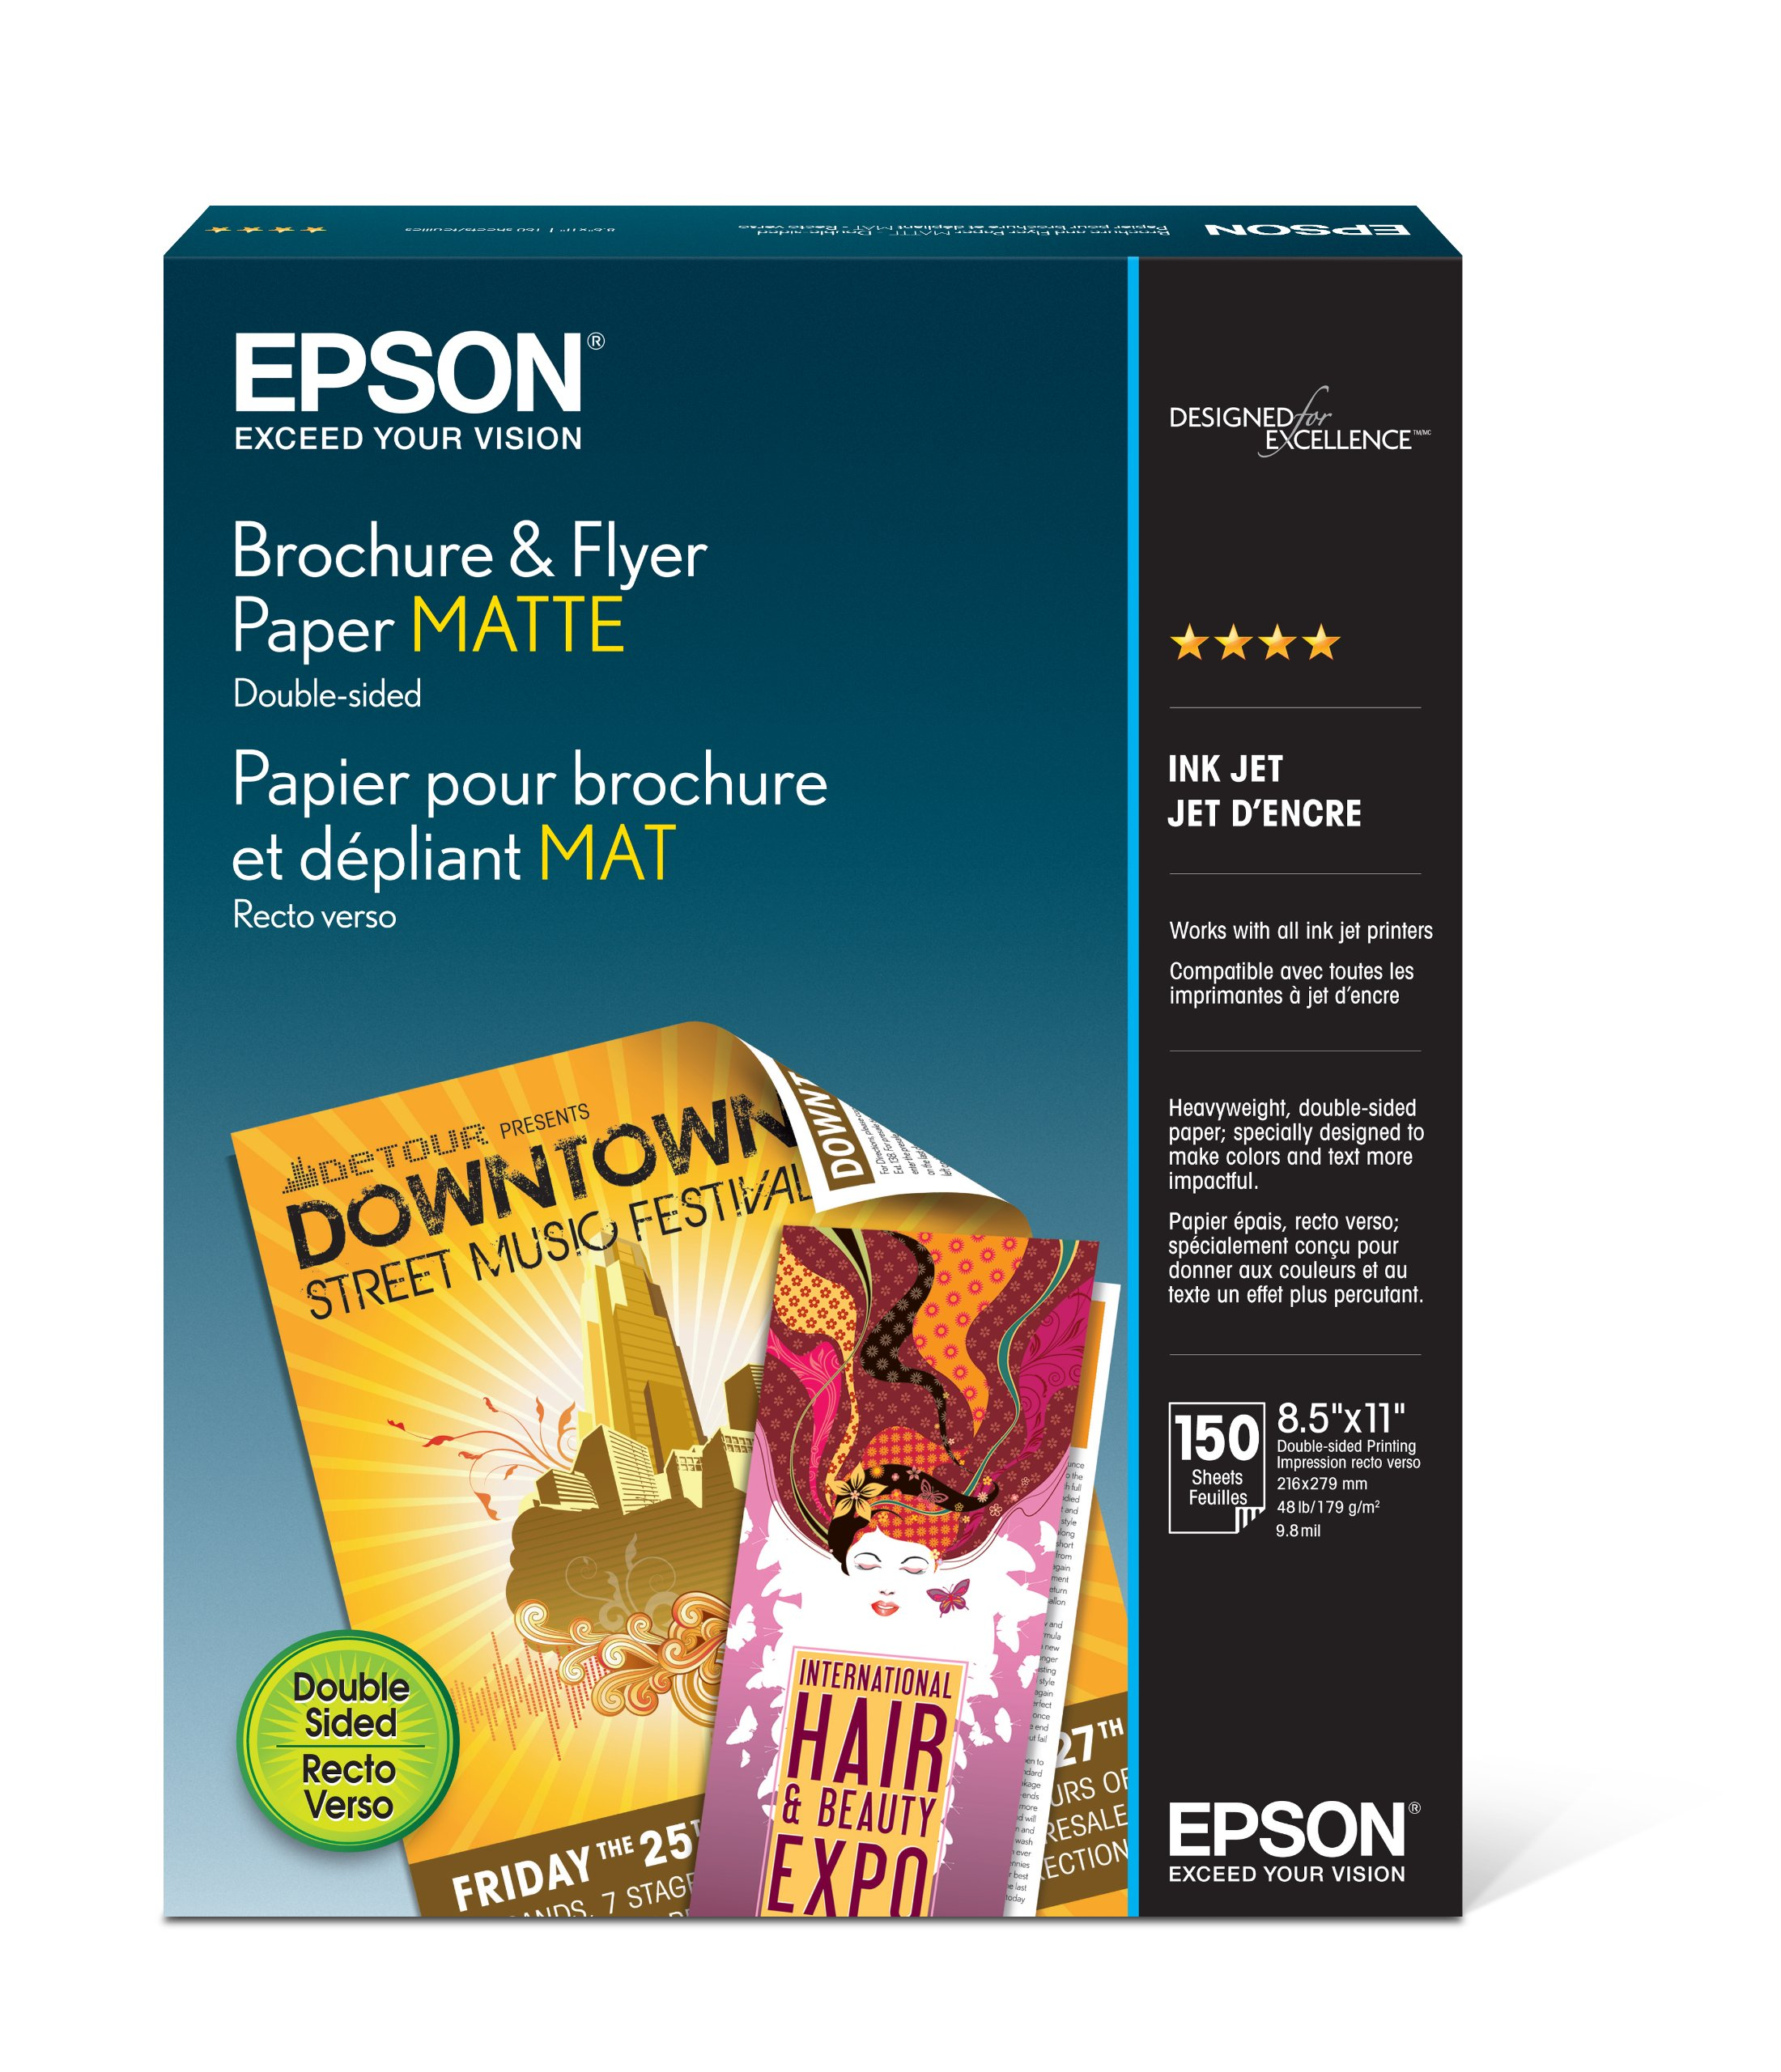 Epson Brochure and Flyer Paper Matte Double-Sided (S042384)